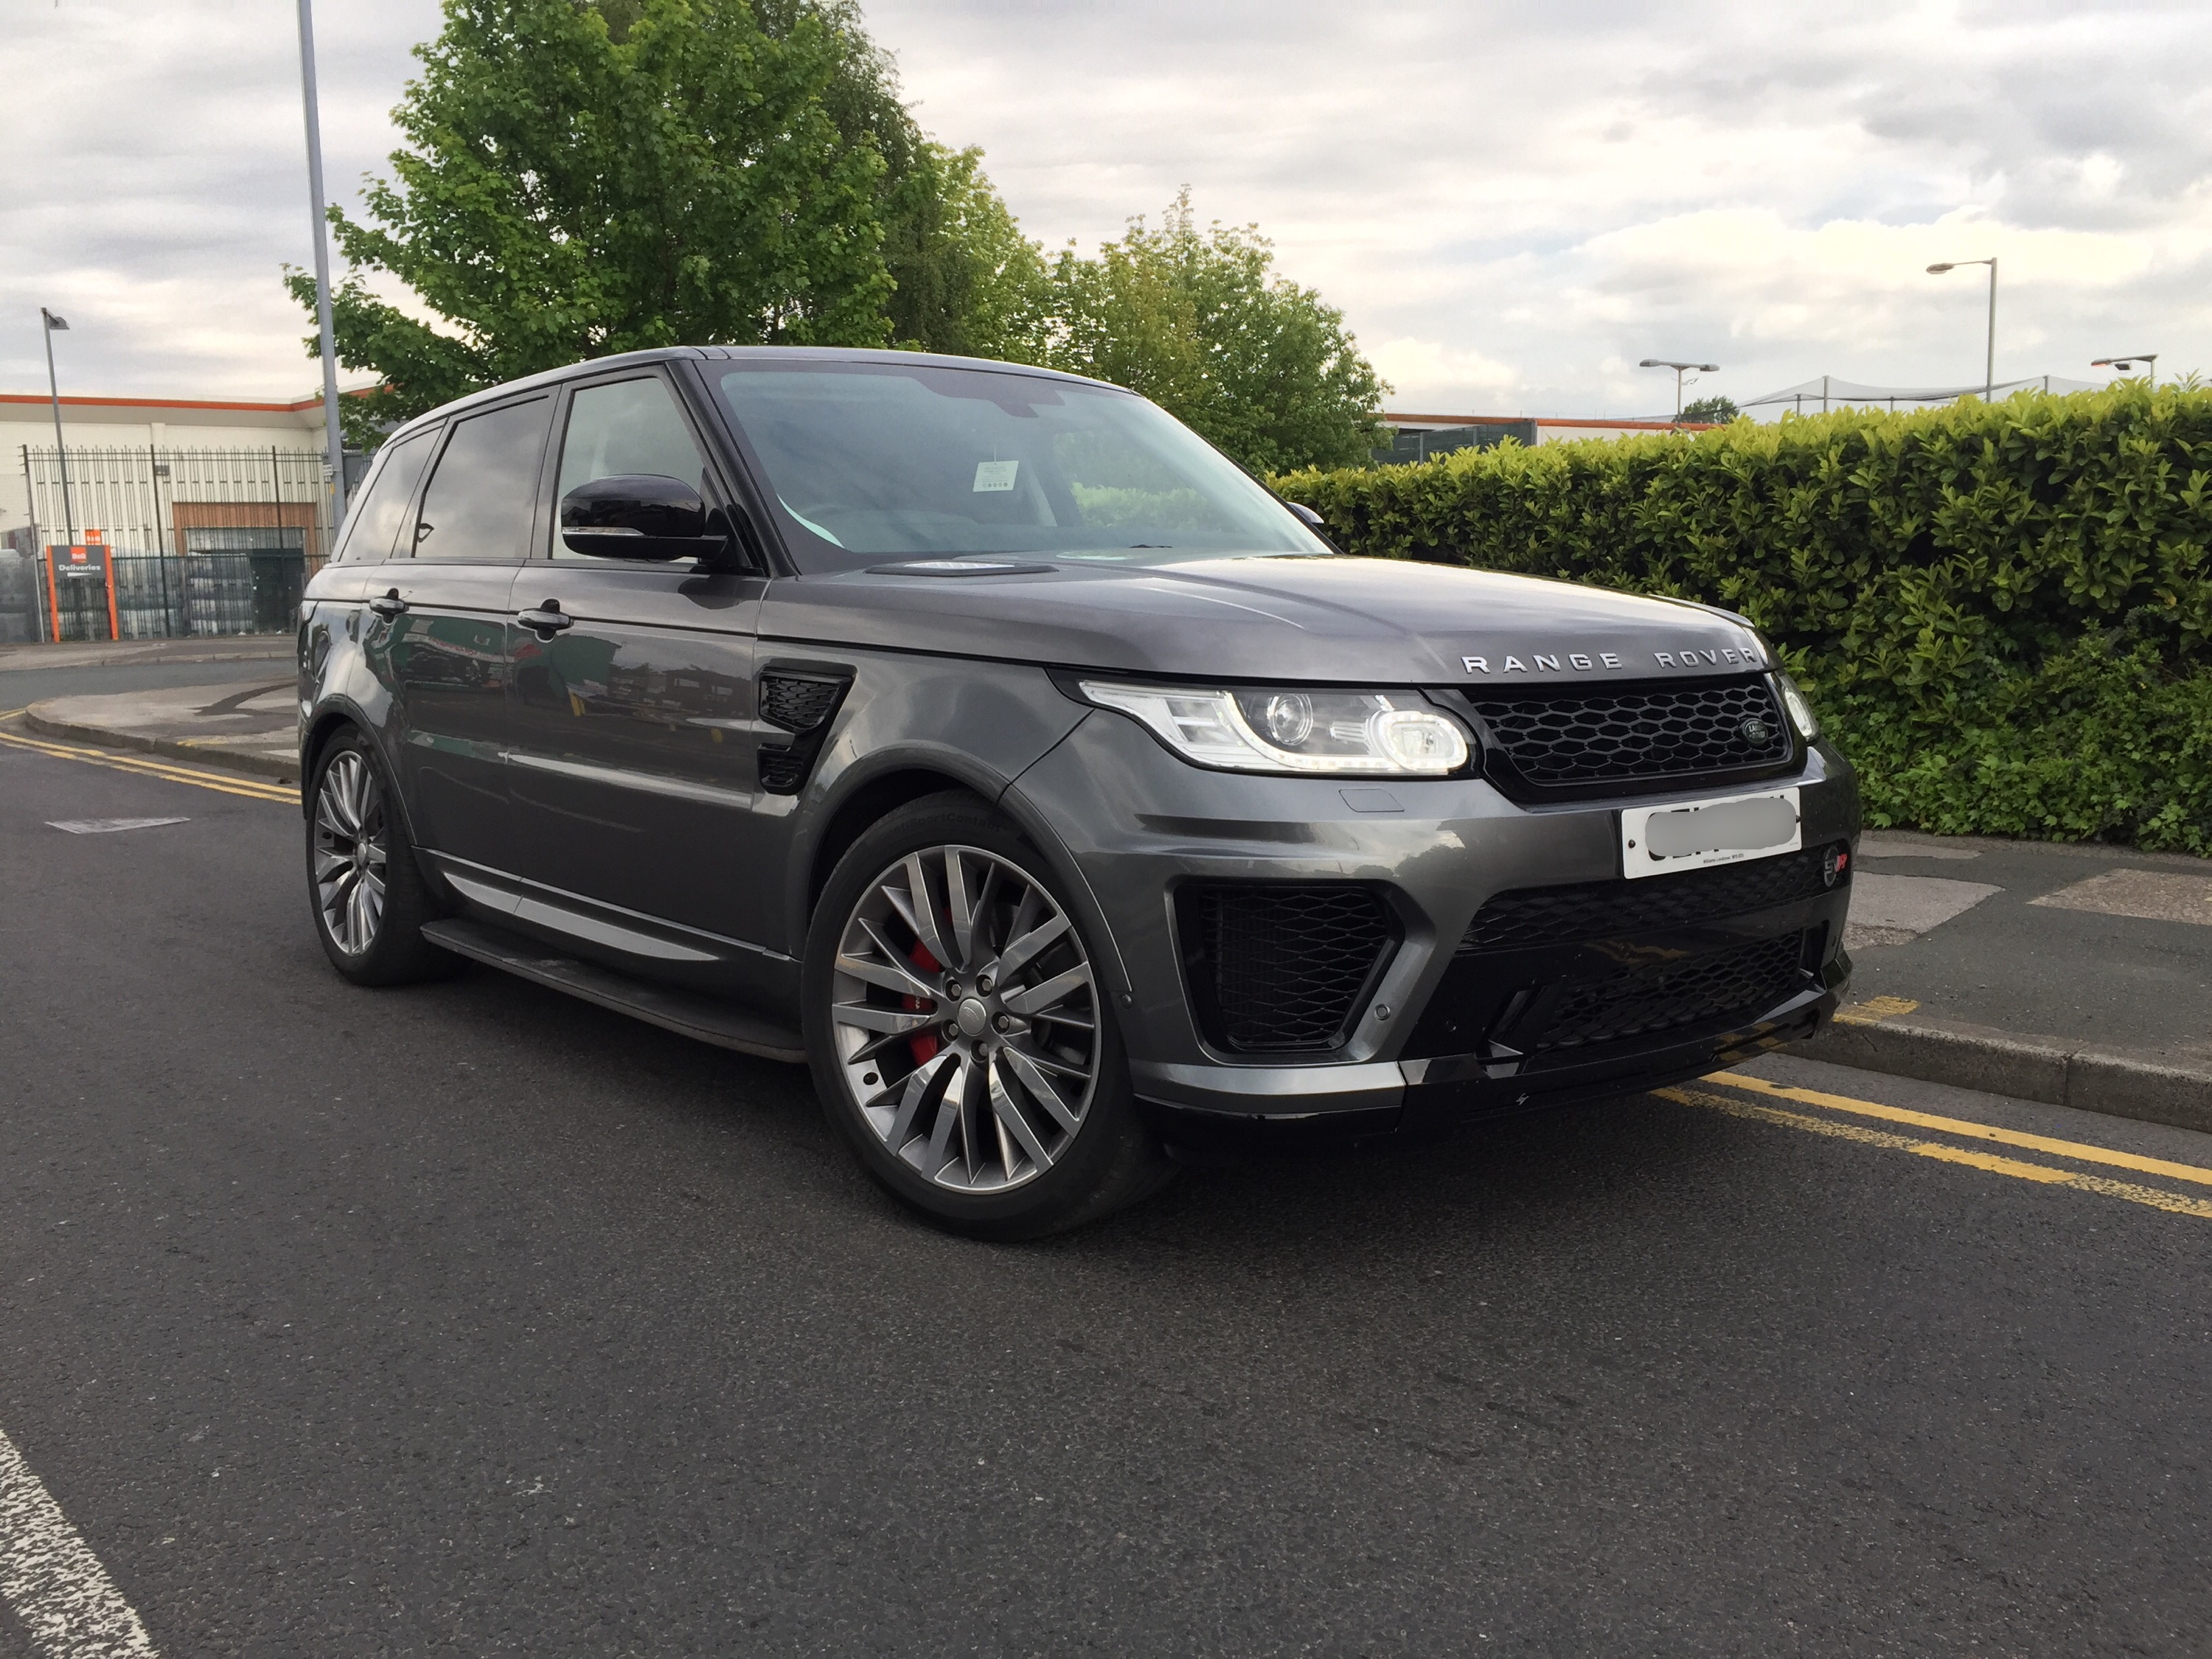 RANGE ROVER SPORT 2013-2017 L494 SVR BODY KIT STYLING